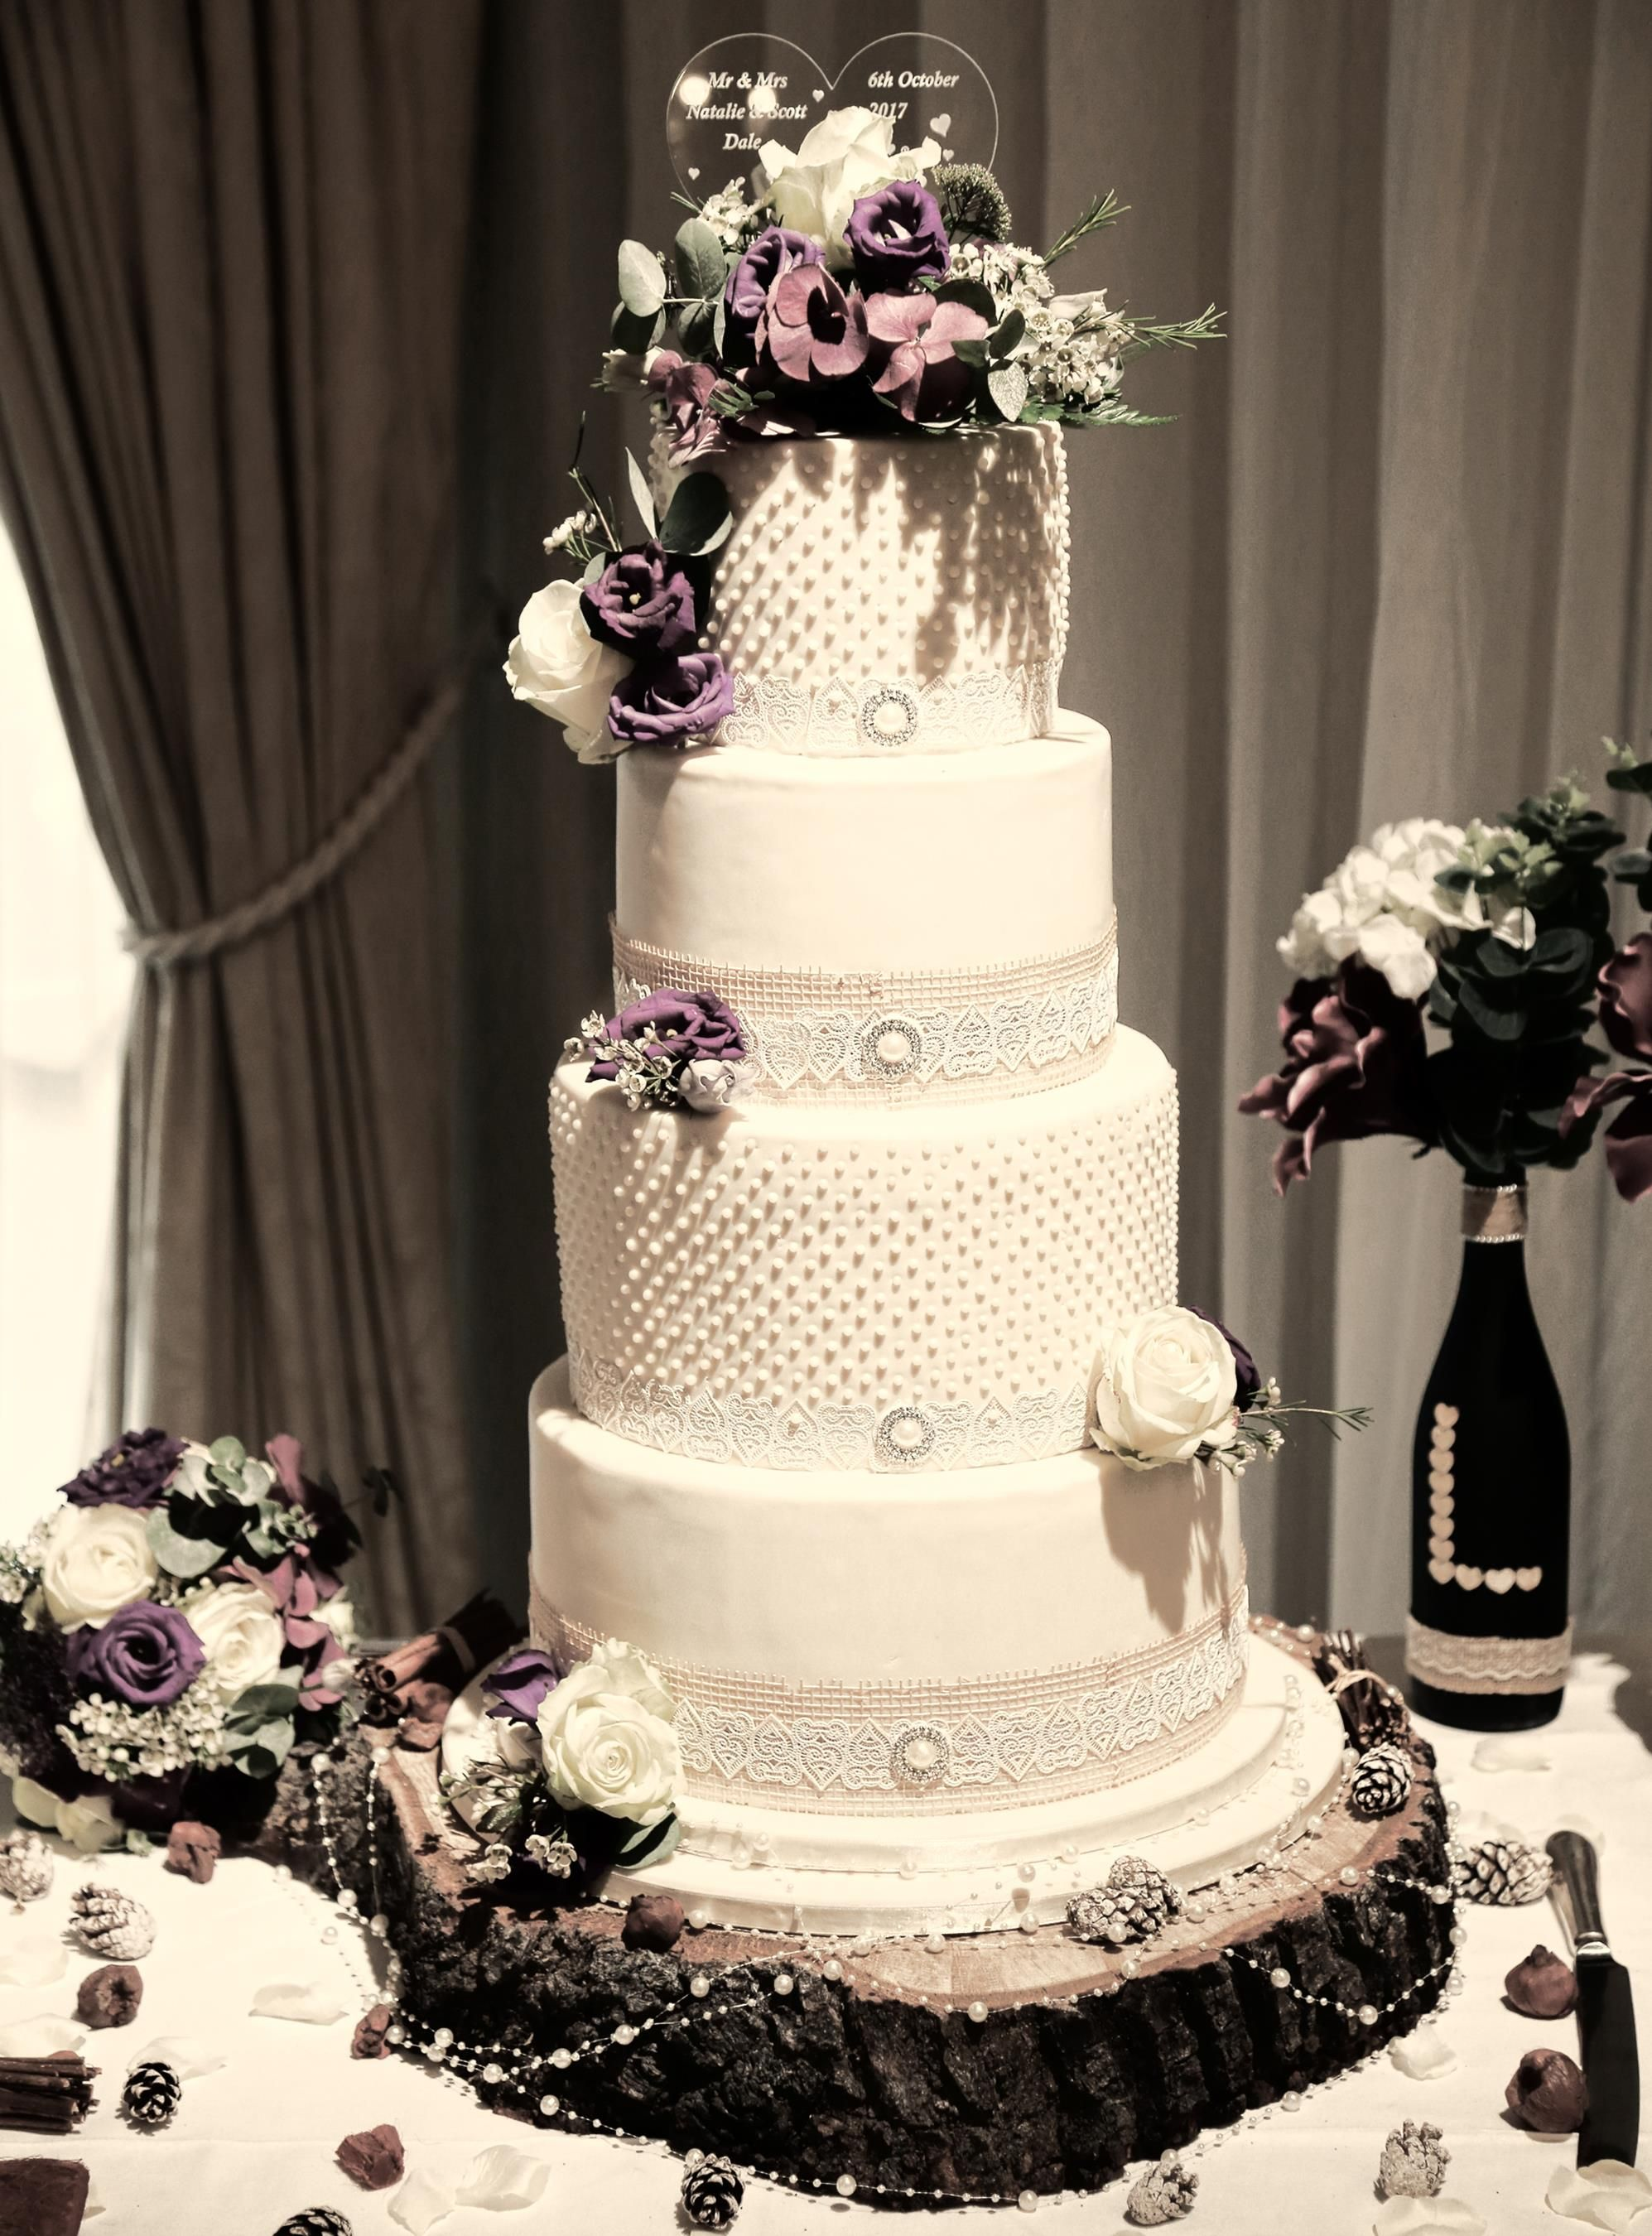 Wedding Cake at Moor Hall Hotel & Spa photo courtesy of Sally